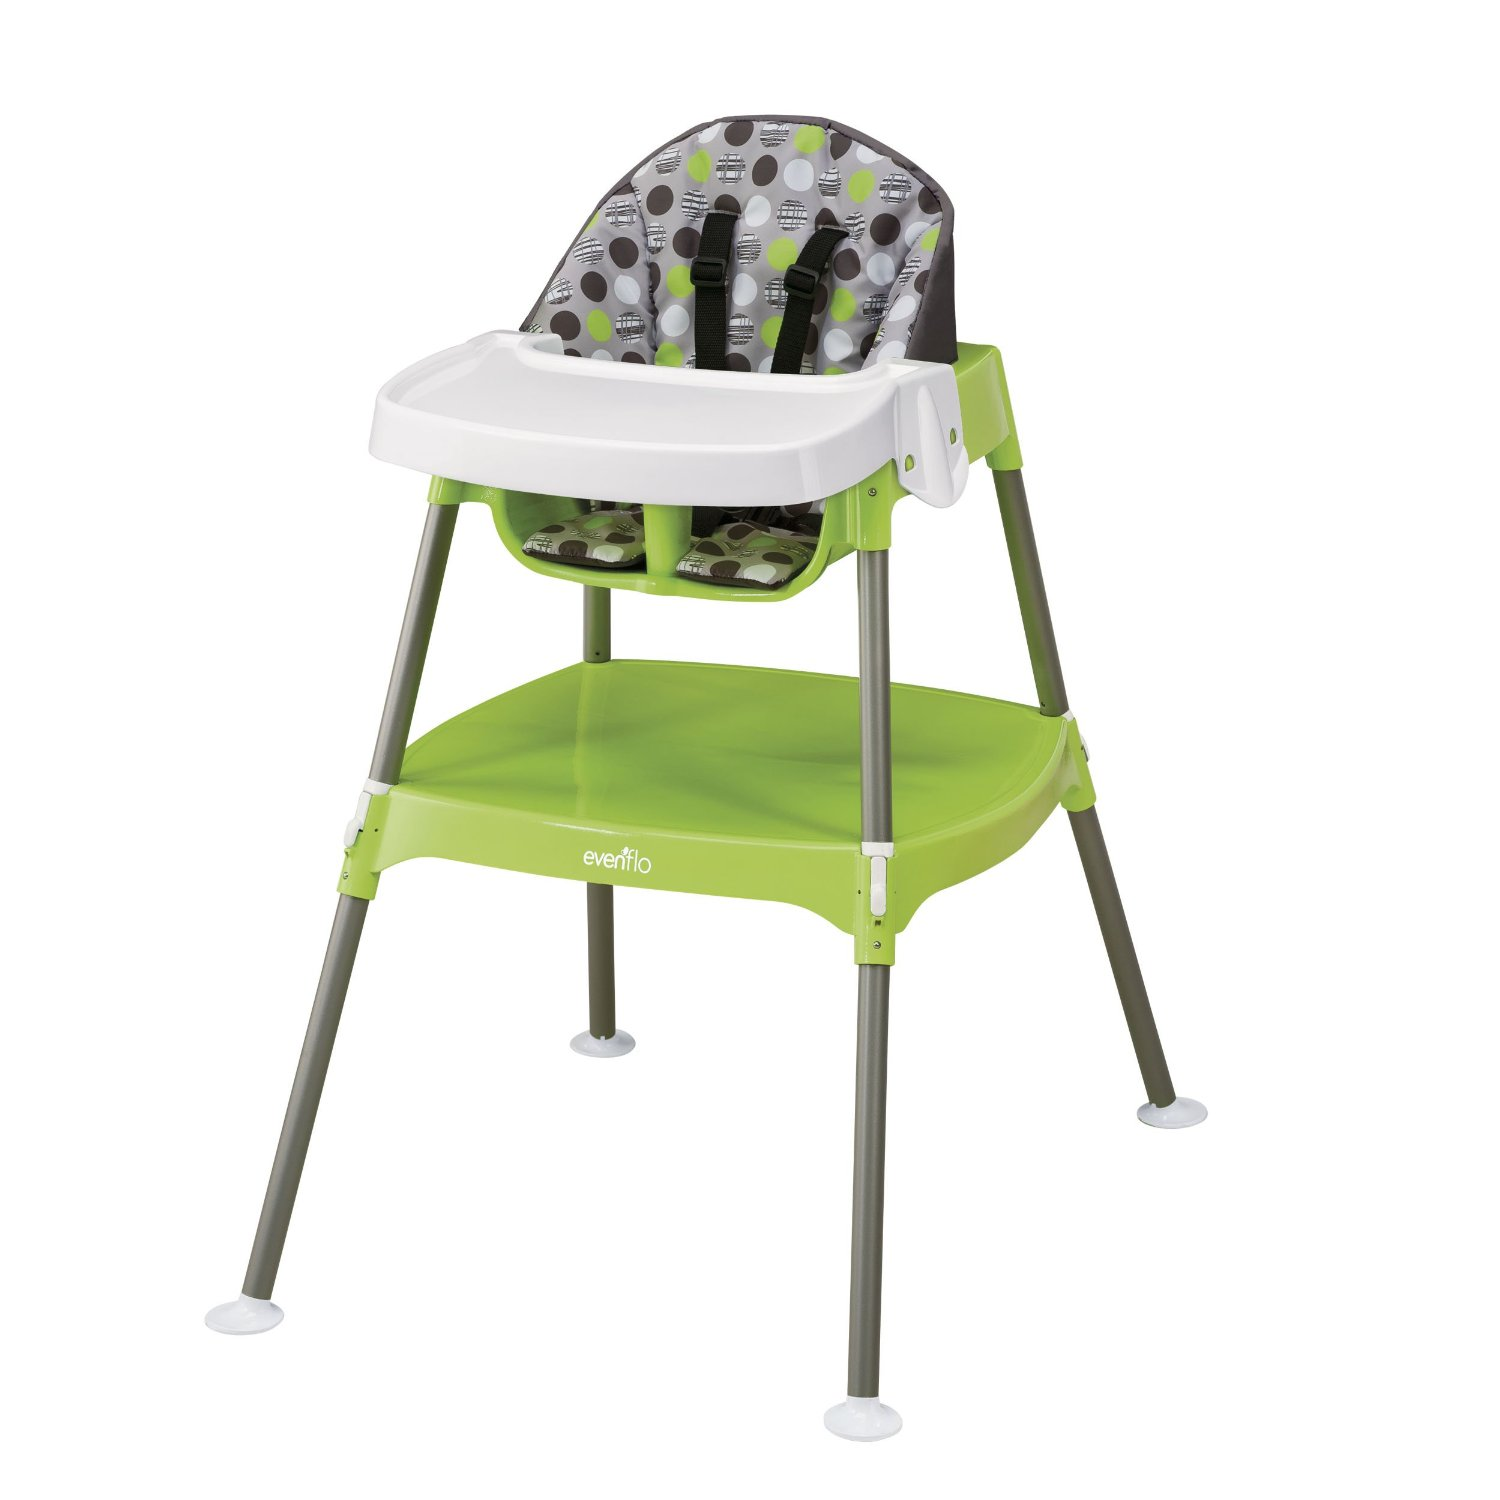 The Top 8 Best Baby High Chairs in 2016 – reviews and parison